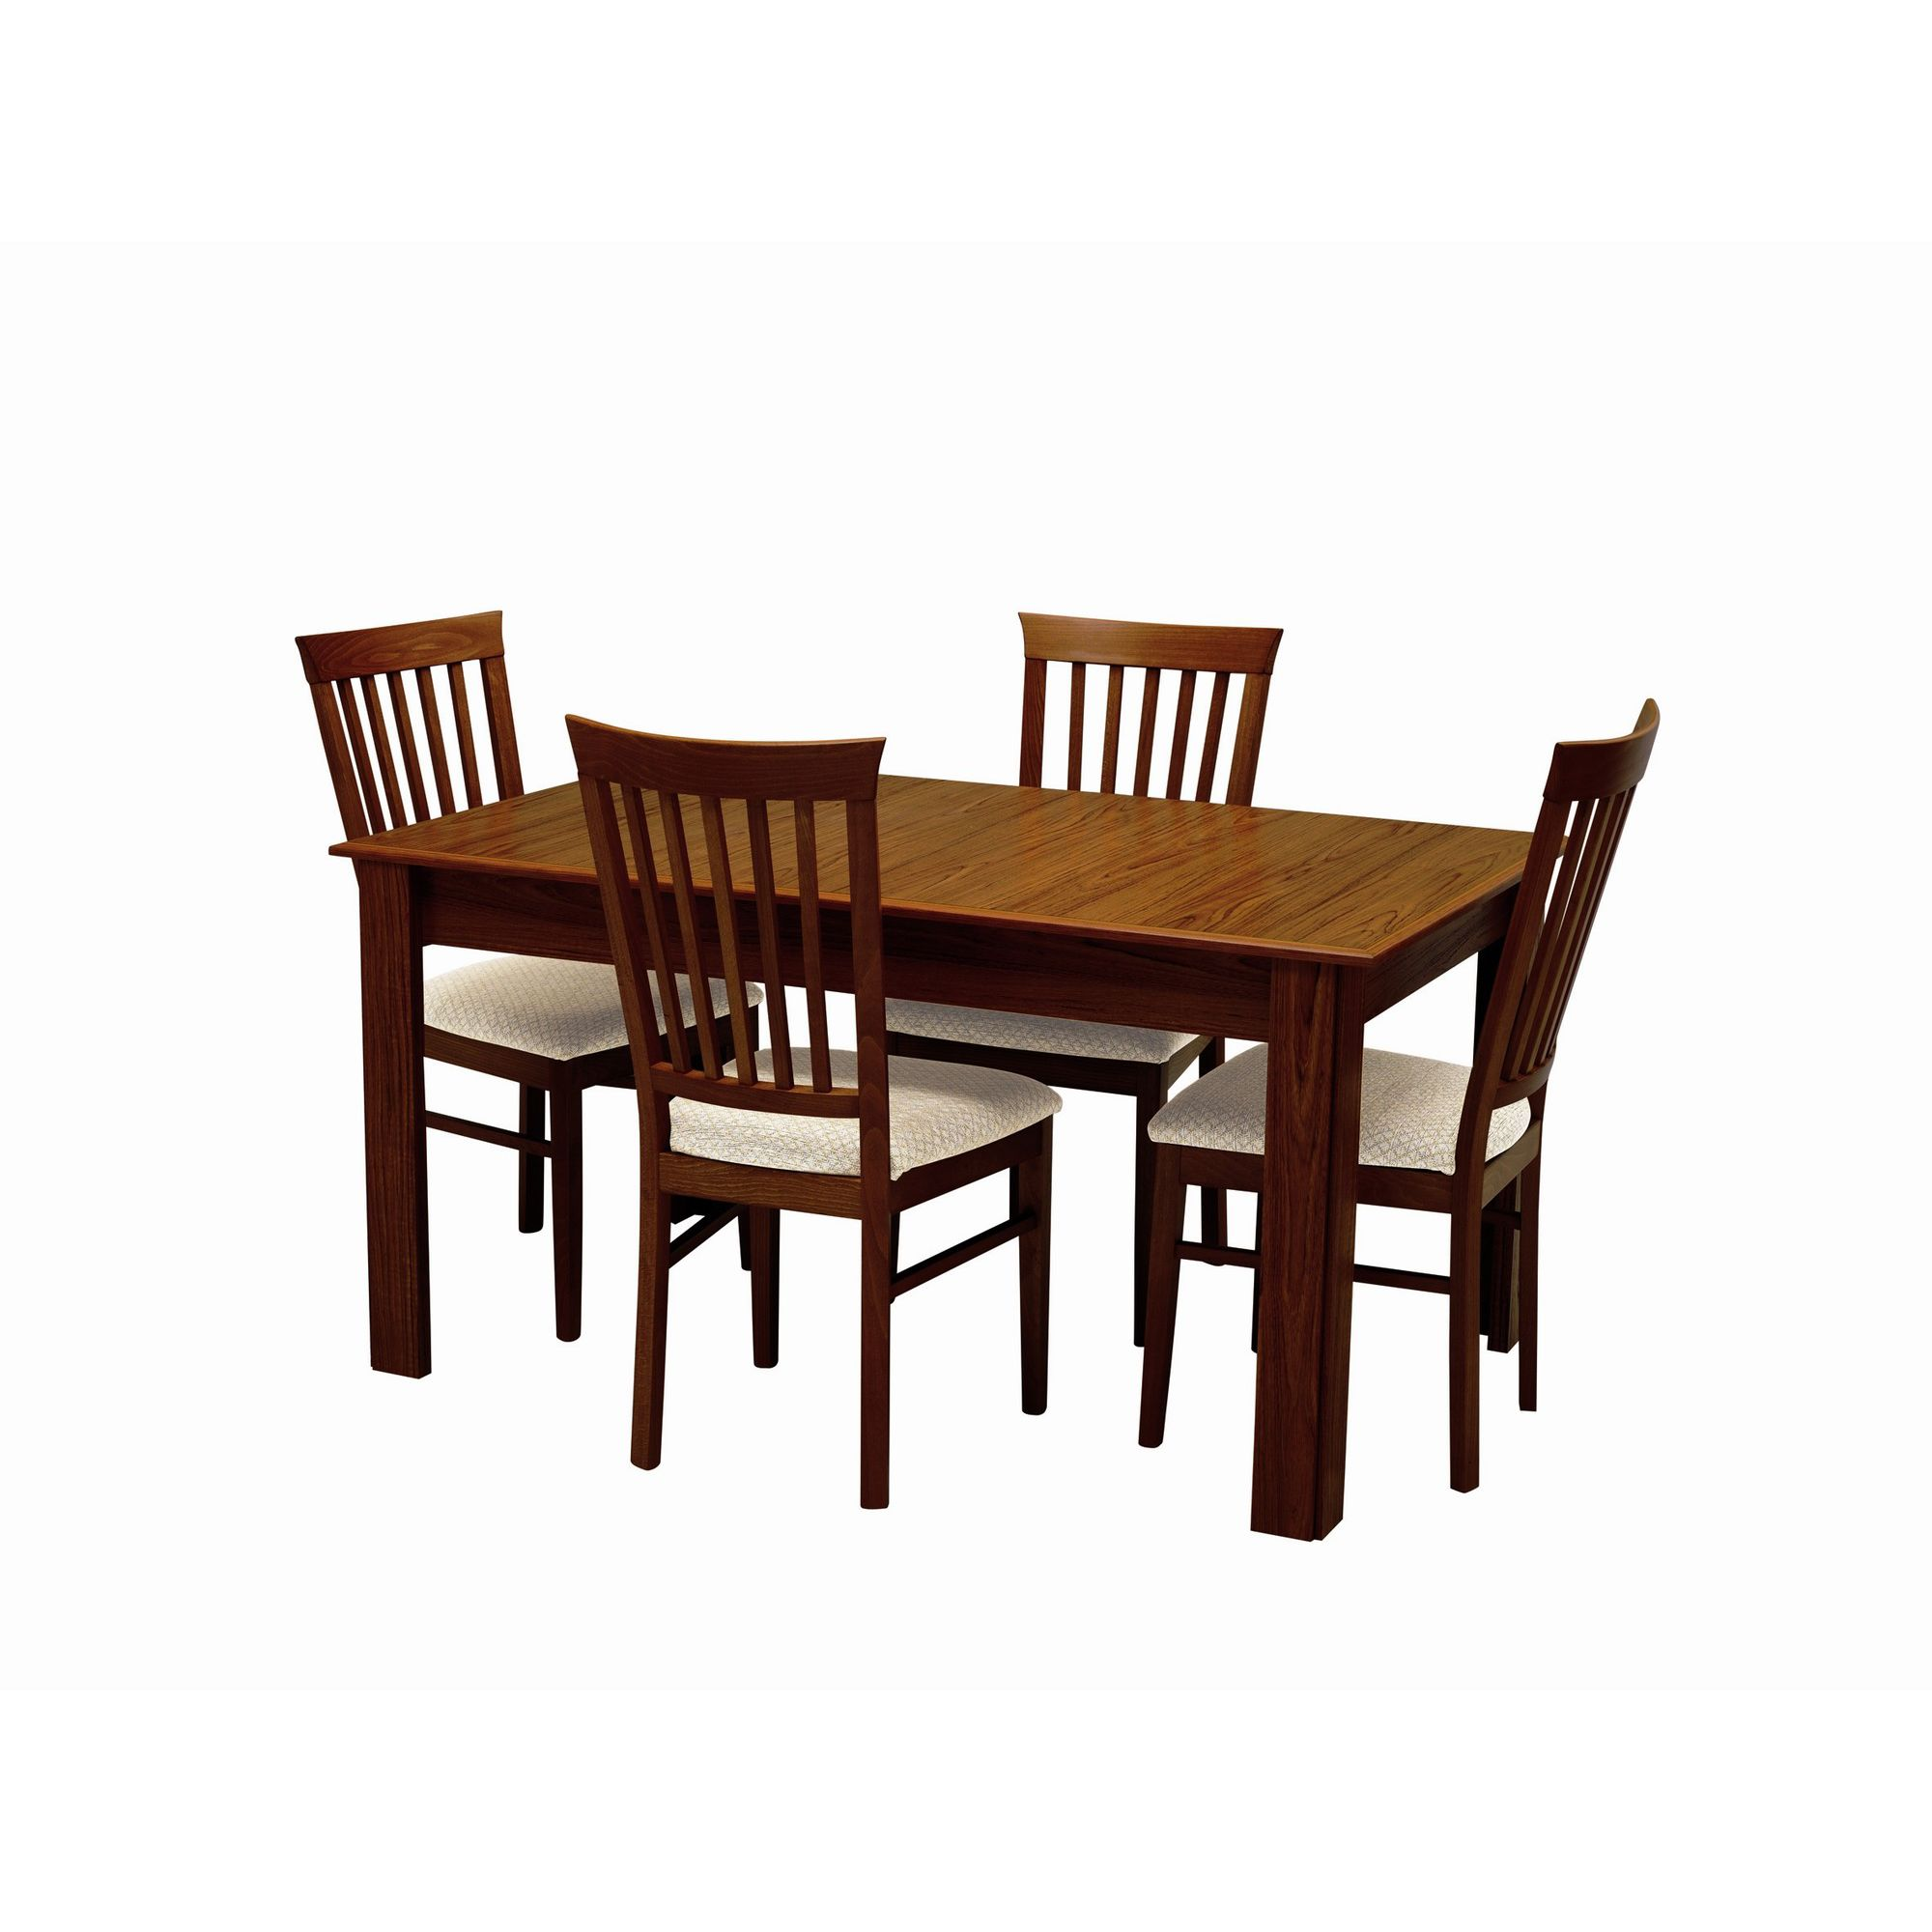 Caxton Byron Extending Dining Set with Slatted Back Dining Chairs in Mahogany - Oyster at Tescos Direct